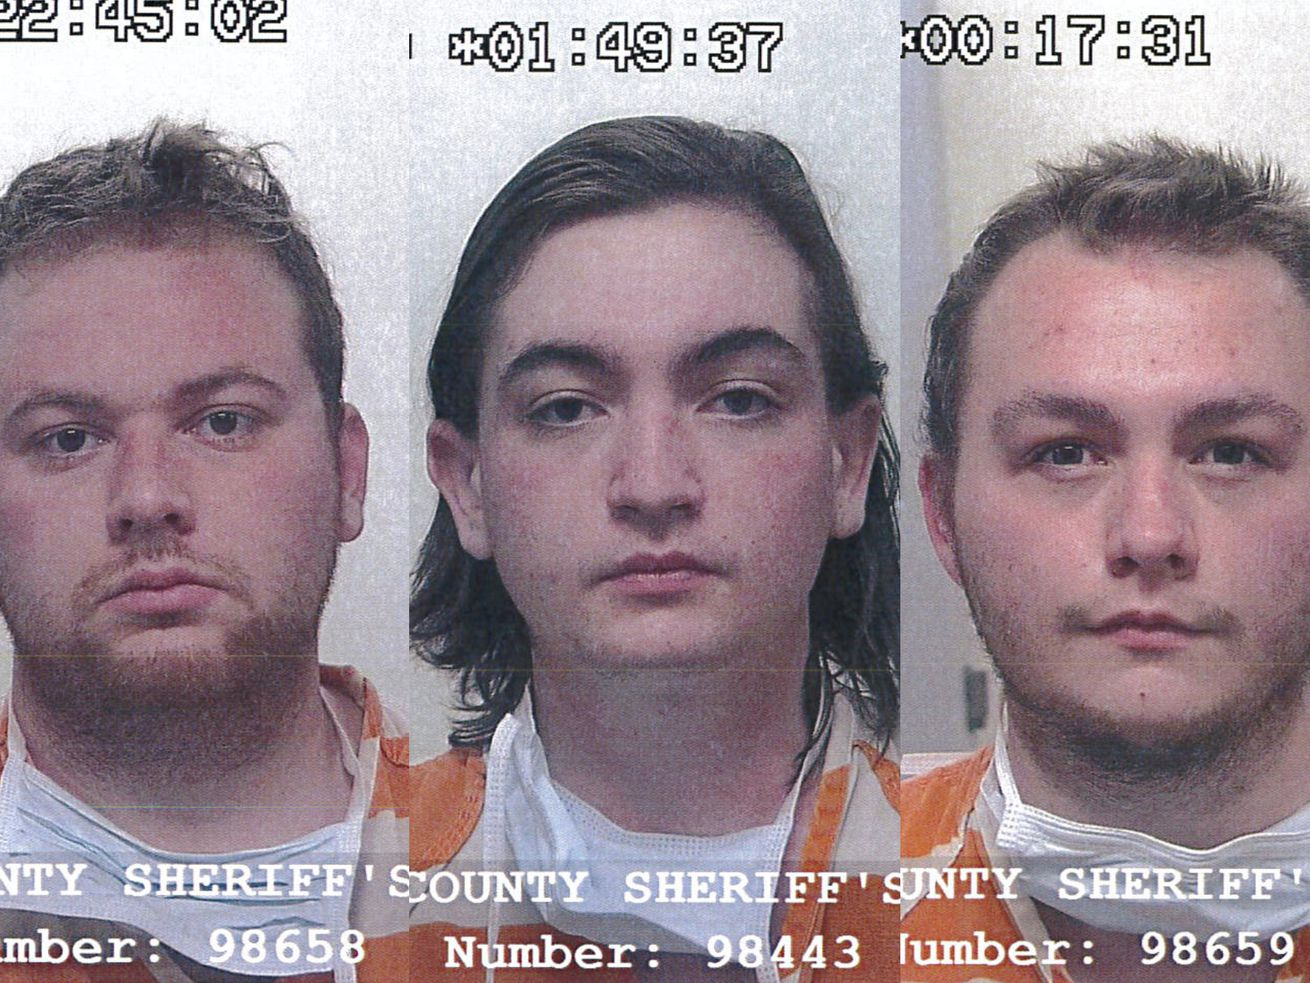 """Hakop """"Jack"""" Keshishian, 20, of Sandy, left; Wyatt William Smelser, 20, of Cottonwood Heights, center; and Izaiah Kirkpatrick, 20, of Draper, right, are each charged with murdering Chance Eggett, 21, in a remote area of Tooele County in May of 2020. Charges against Kirkpatrick and Keshishian have now been upgraded to capital murder."""